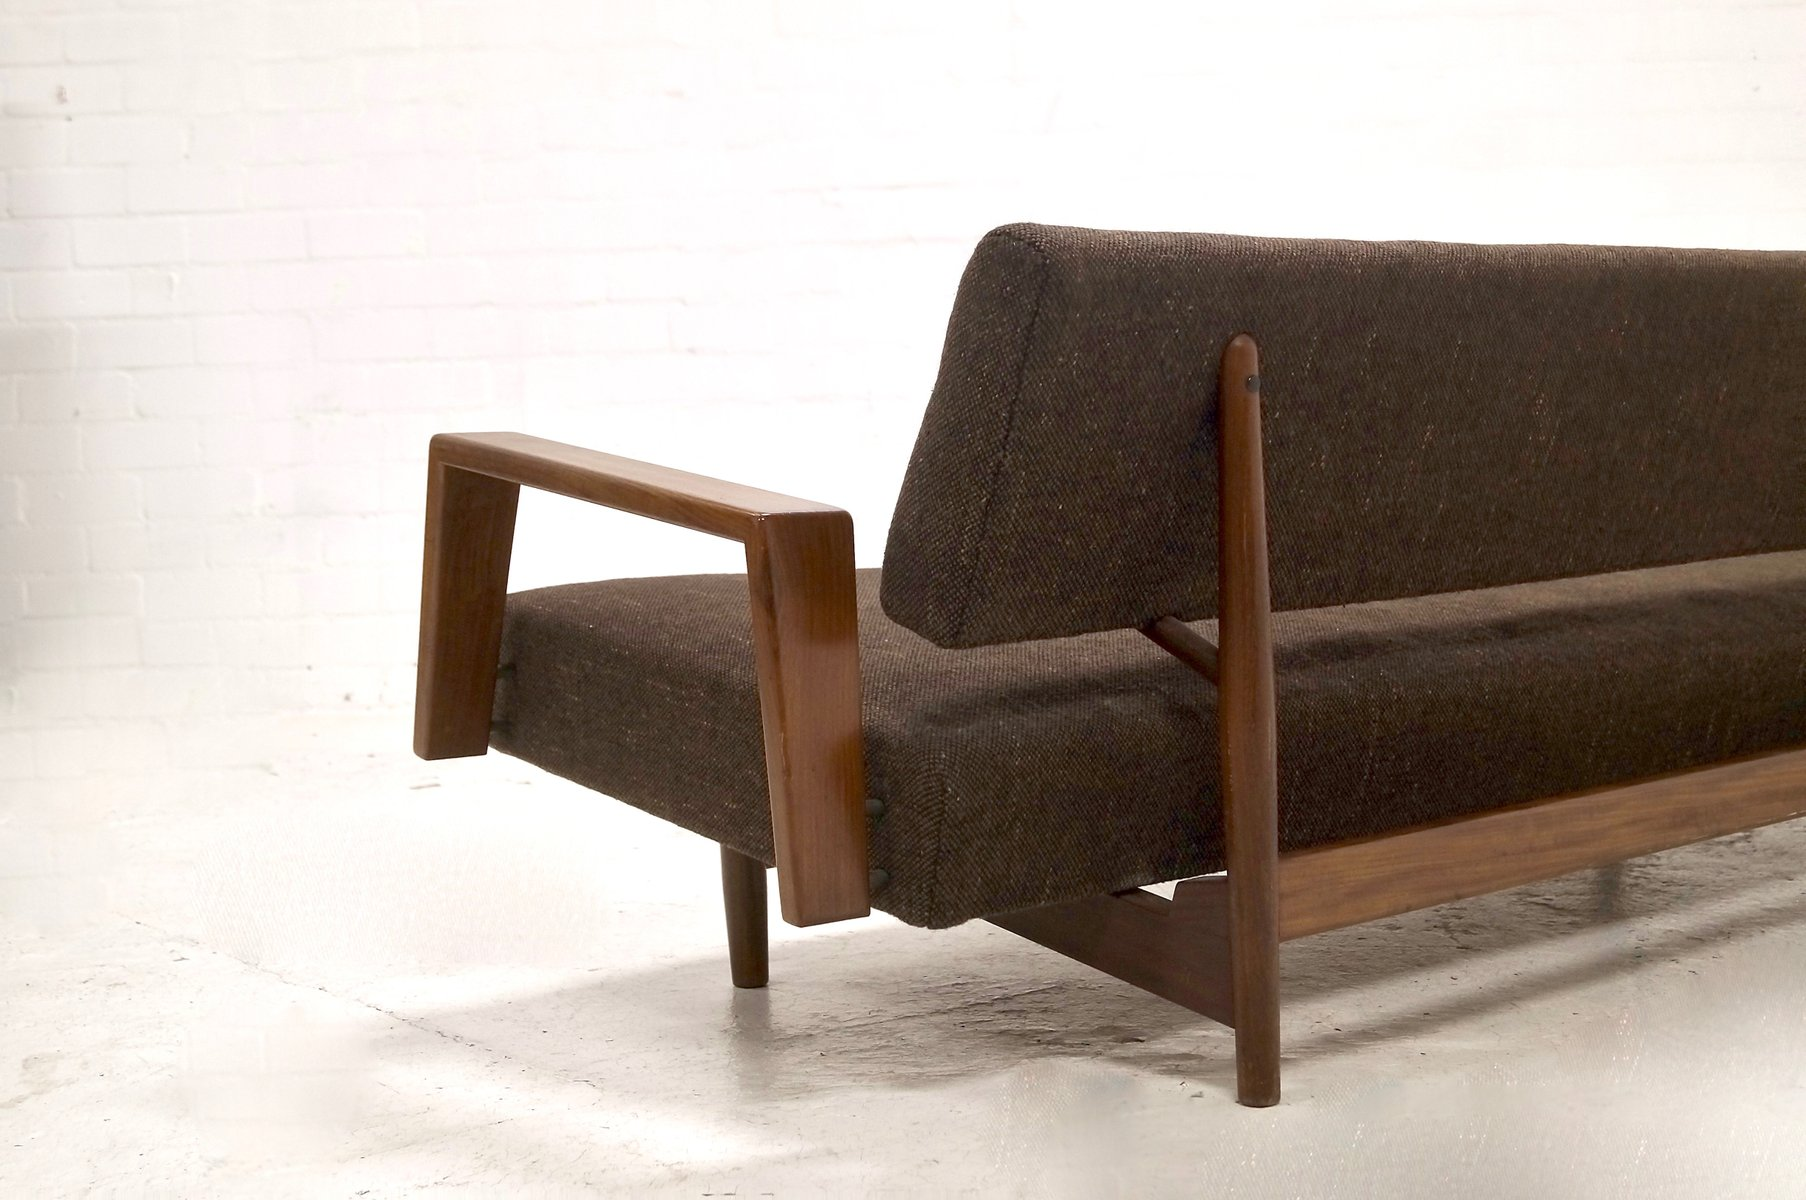 Mid century doublet teak daybed sofa by rob parry for for Mid century daybed sofa